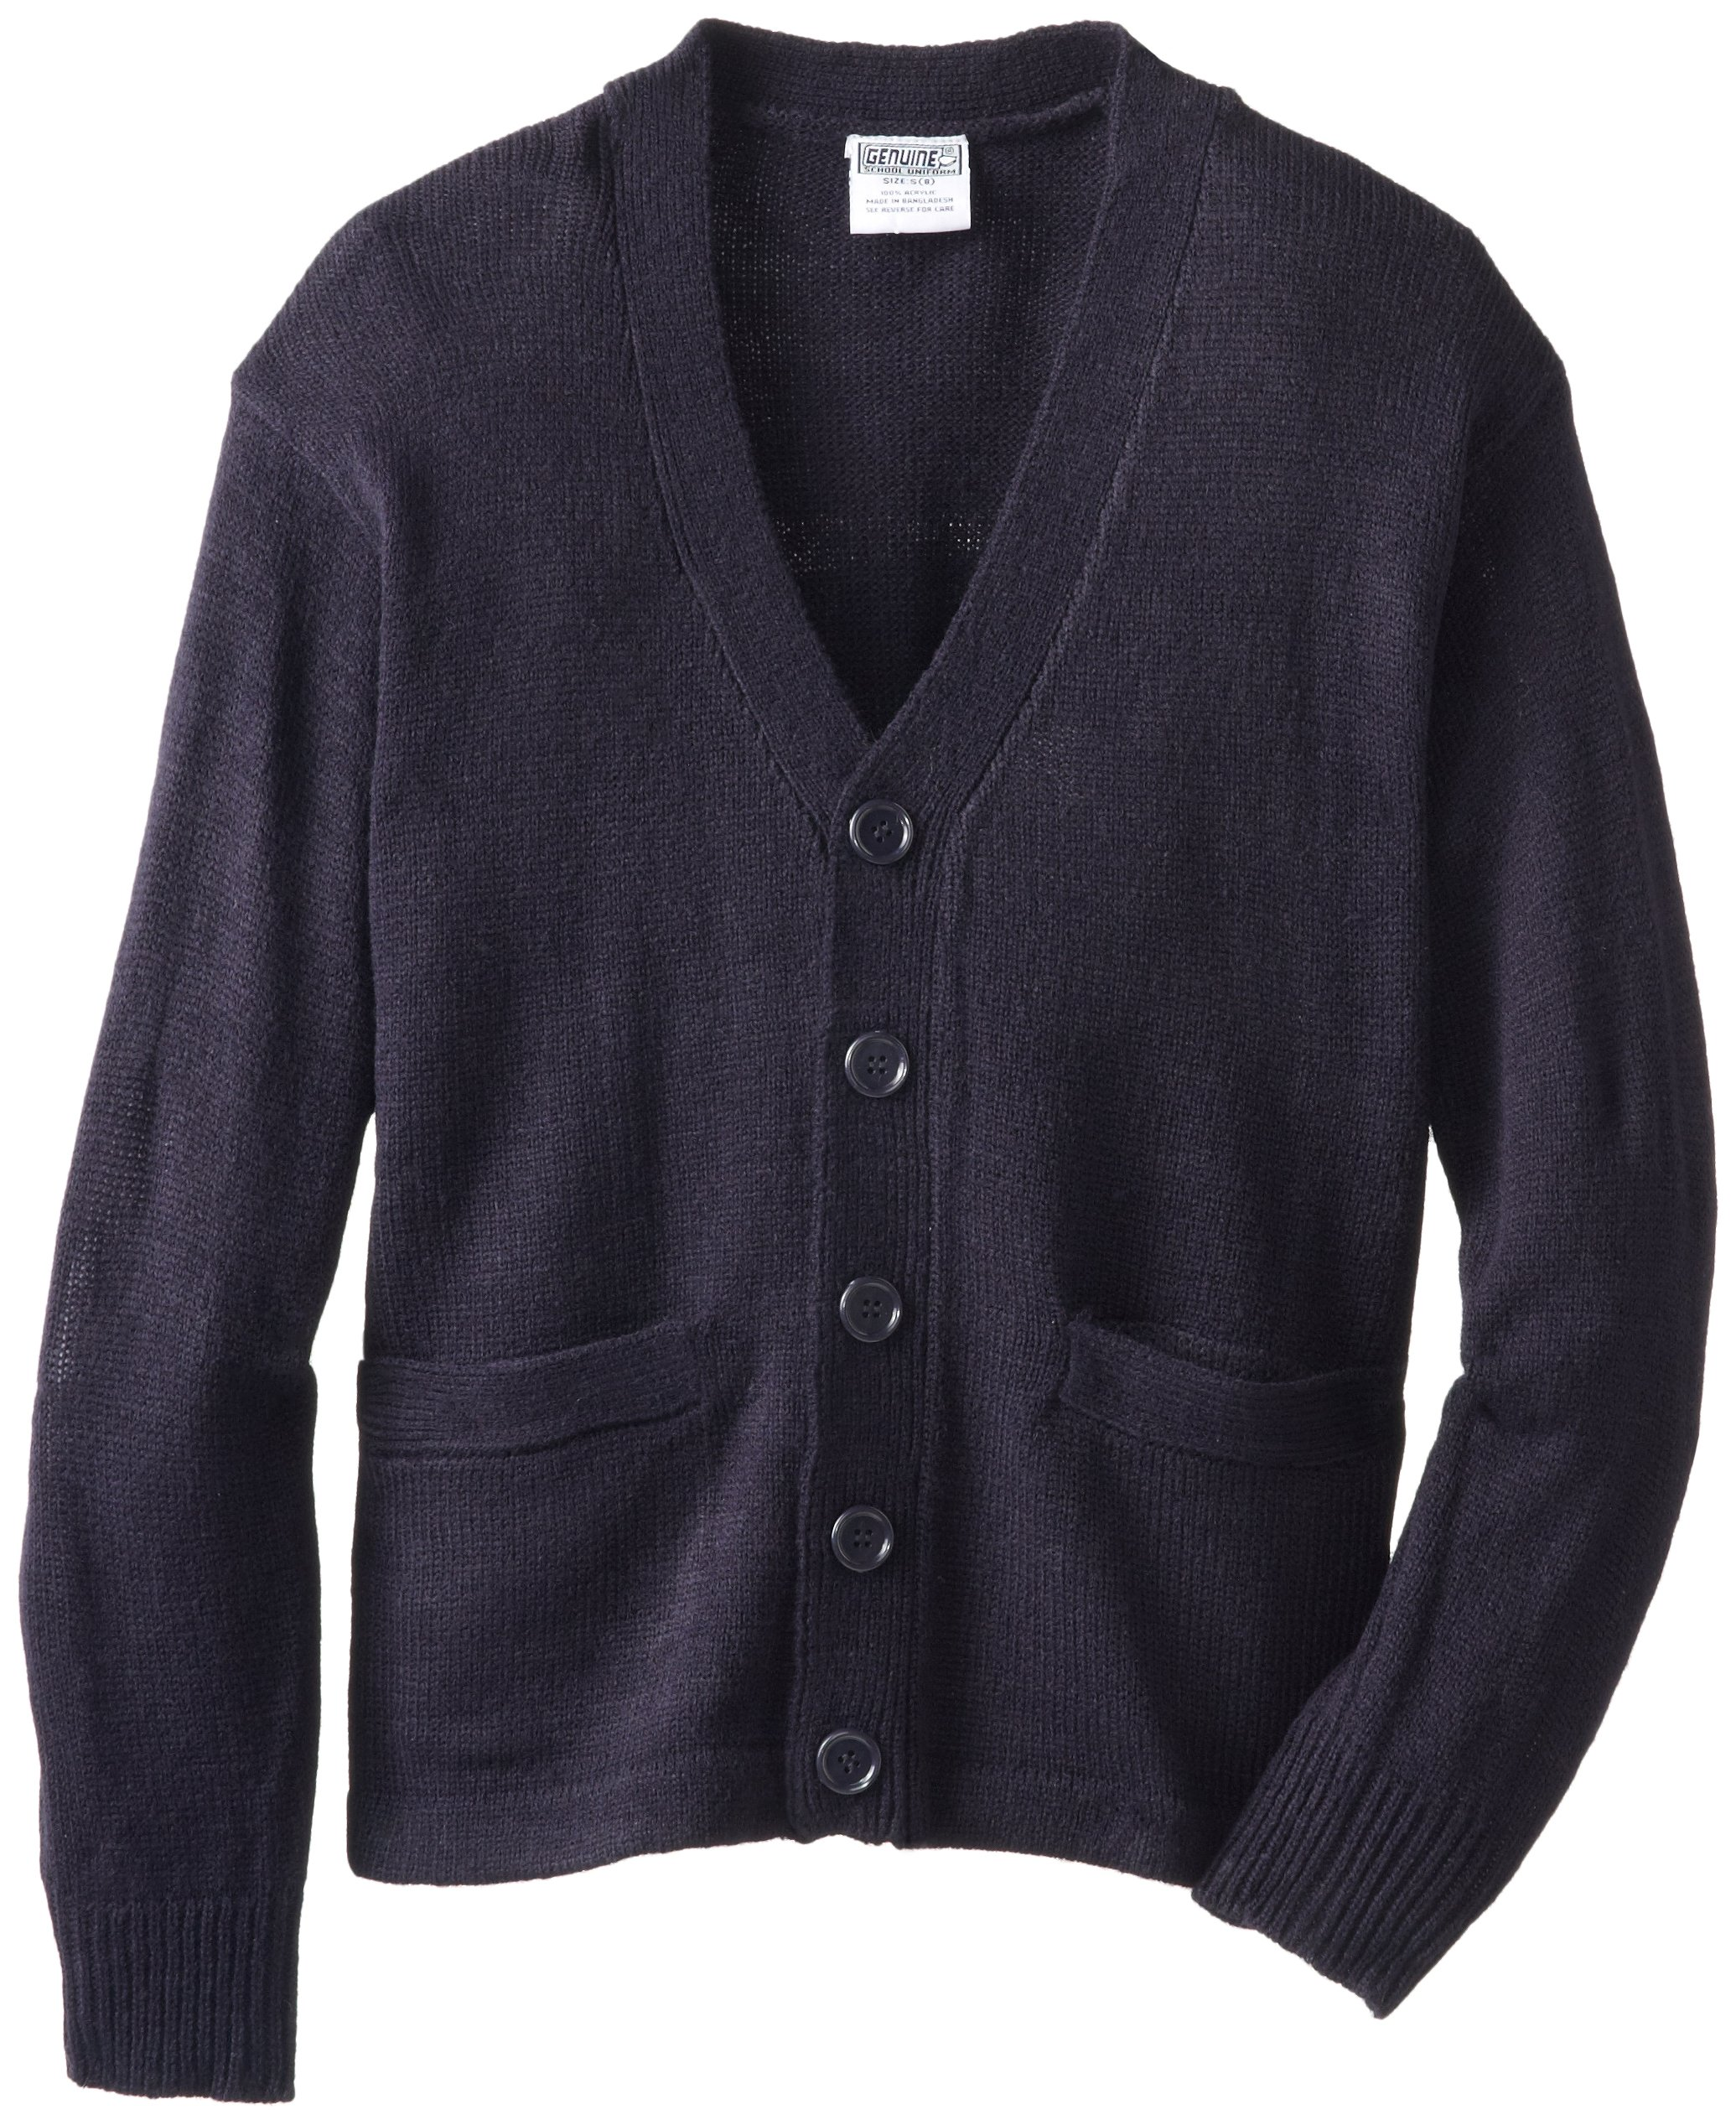 Genuine Boys' Sweater (More Styles Available), Classic Navy, 8